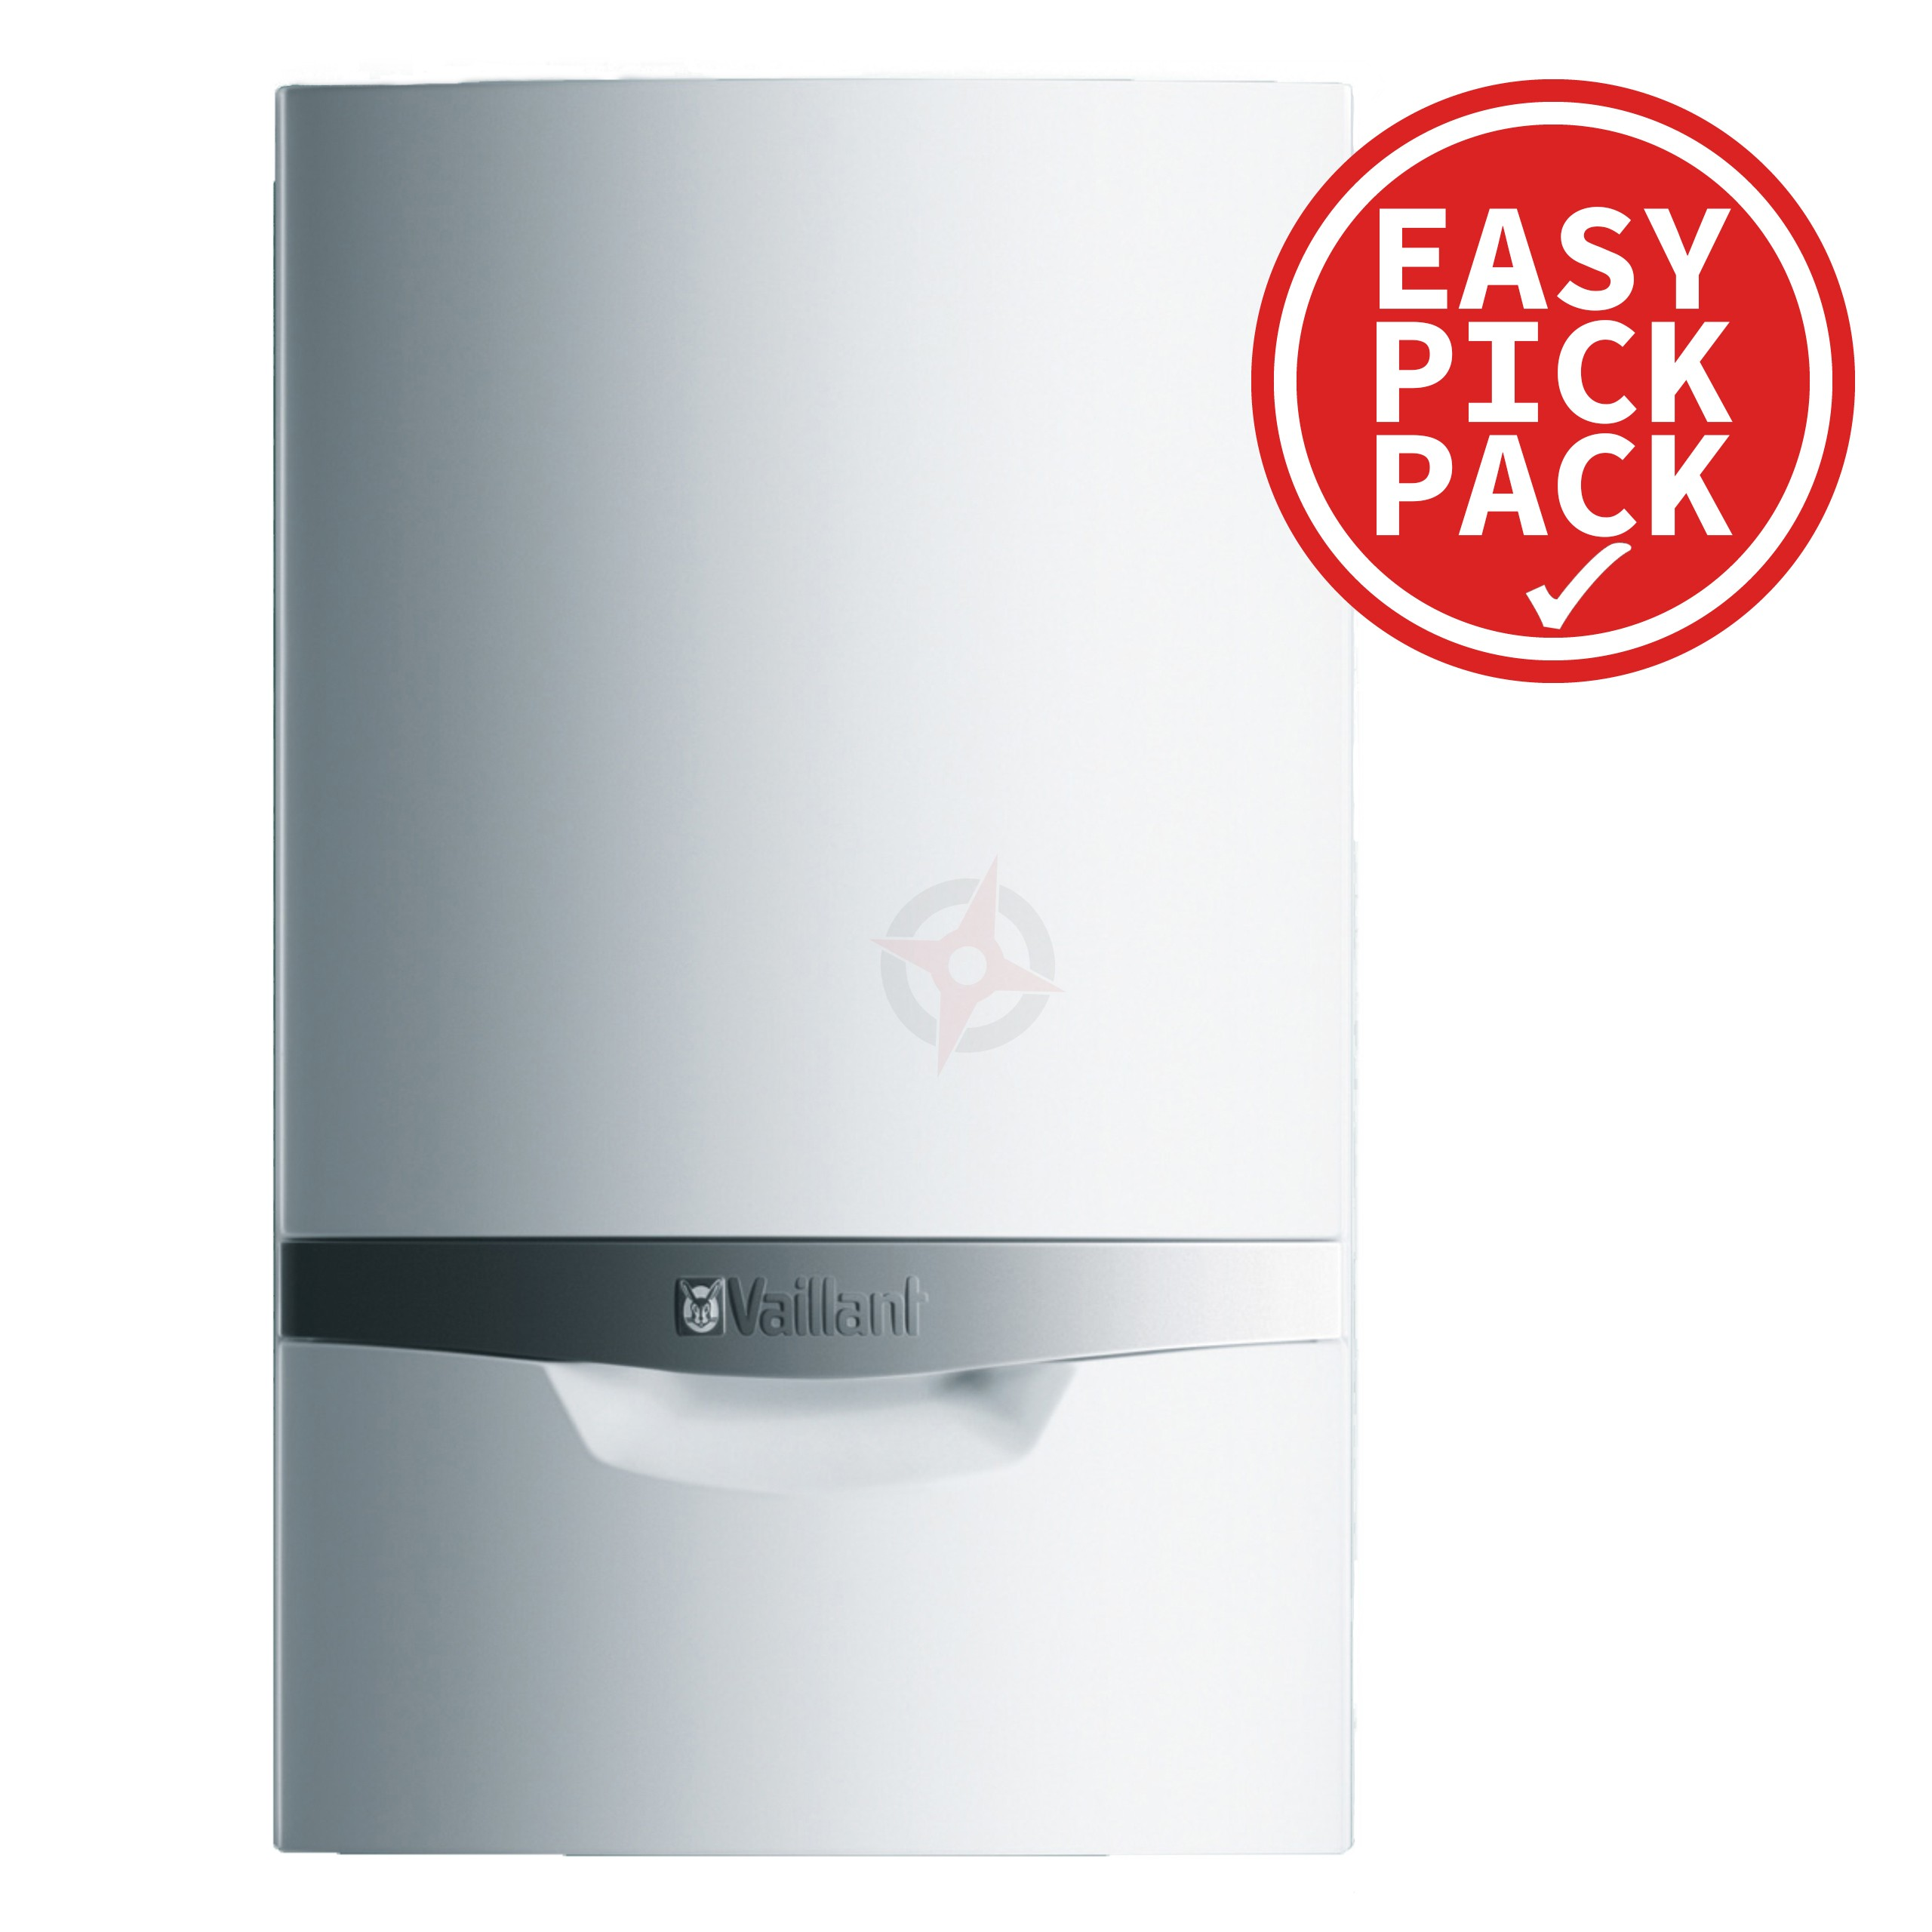 Vaillant EcoTEC Plus 832 (ErP) Combi Boiler Easy Pick Pack